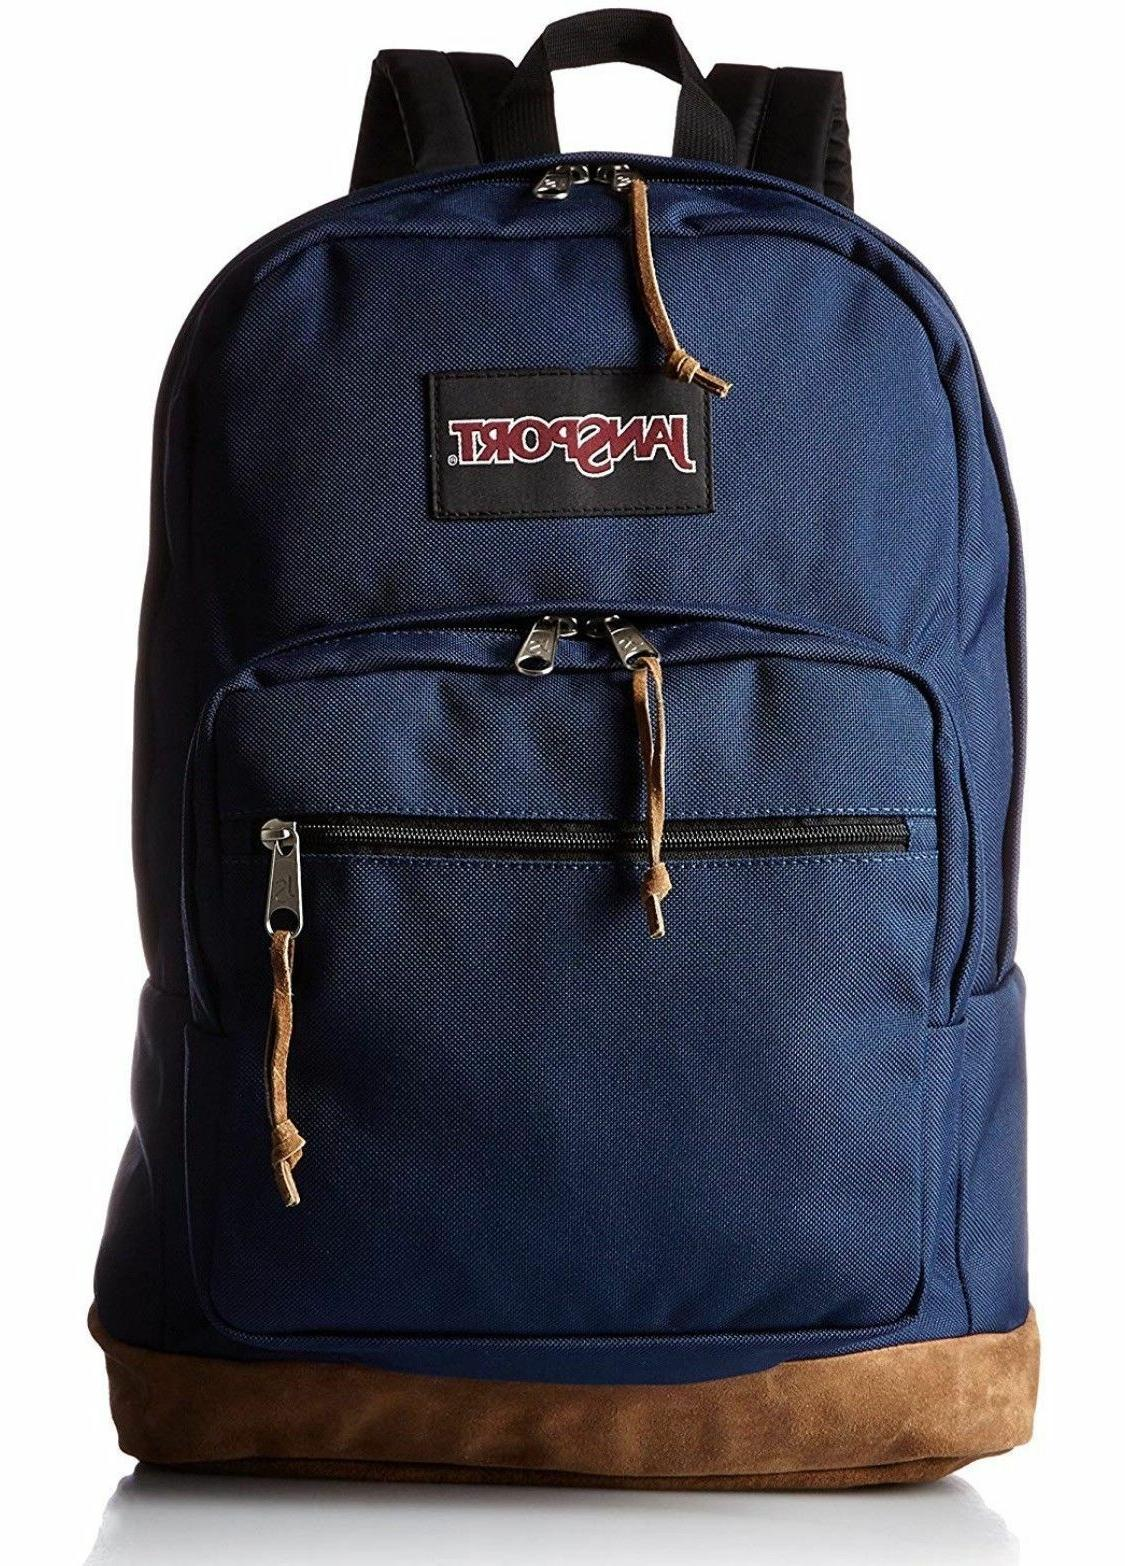 right backpack navy typ7003